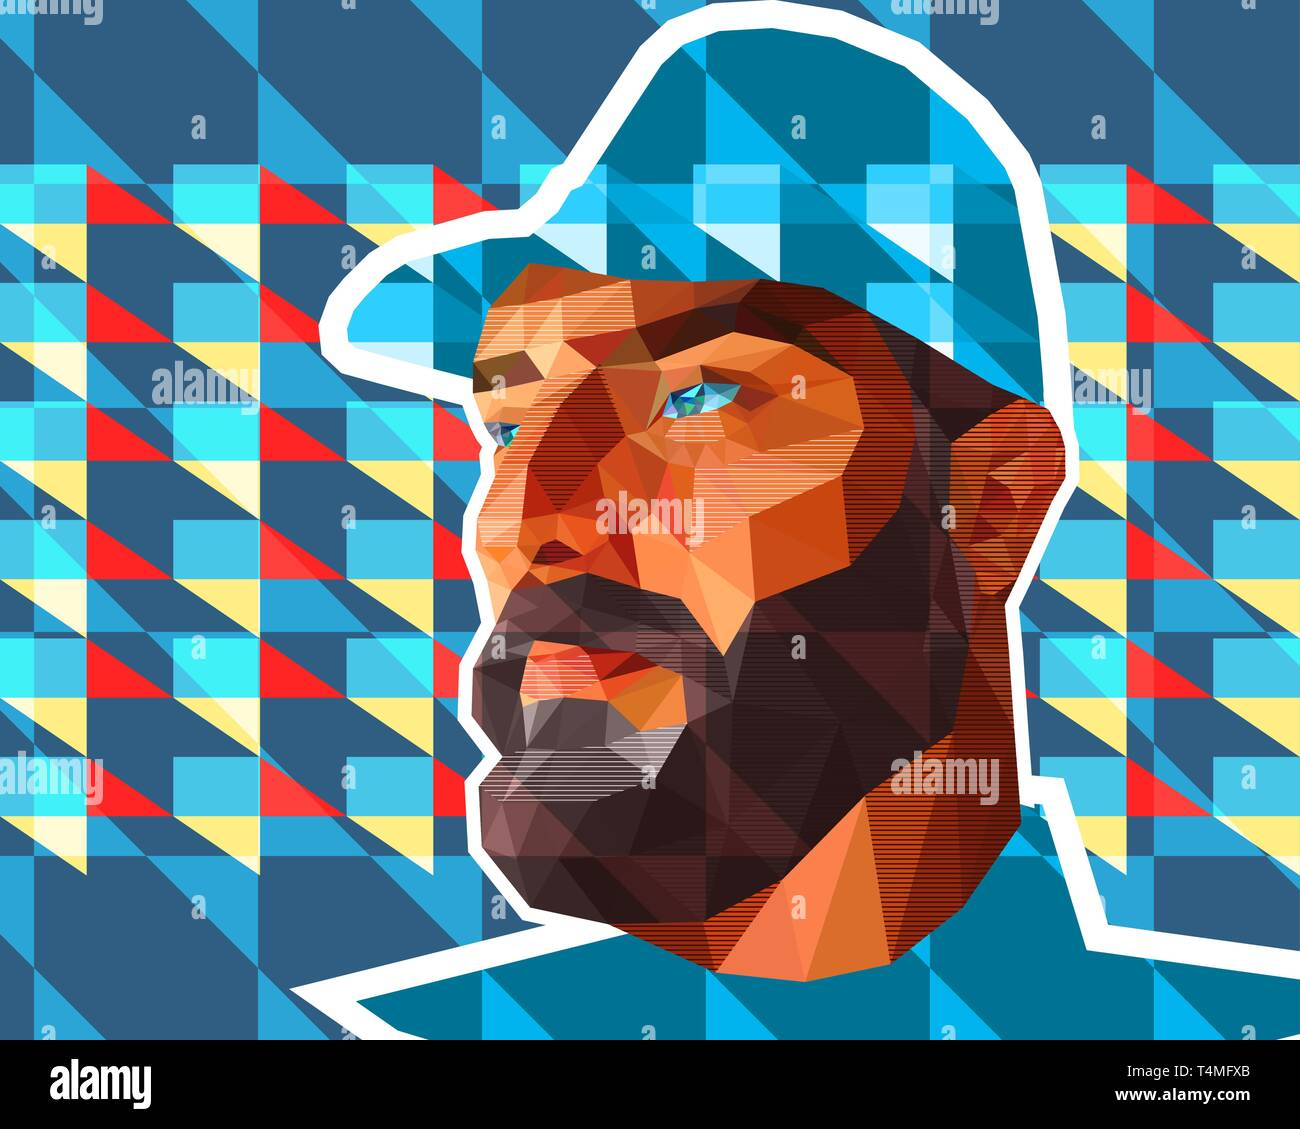 Vector illustration in low polygon style. A man with large expressive features, a thick beard, a crook-nose and slightly slanting eyes is dressed in m - Stock Vector